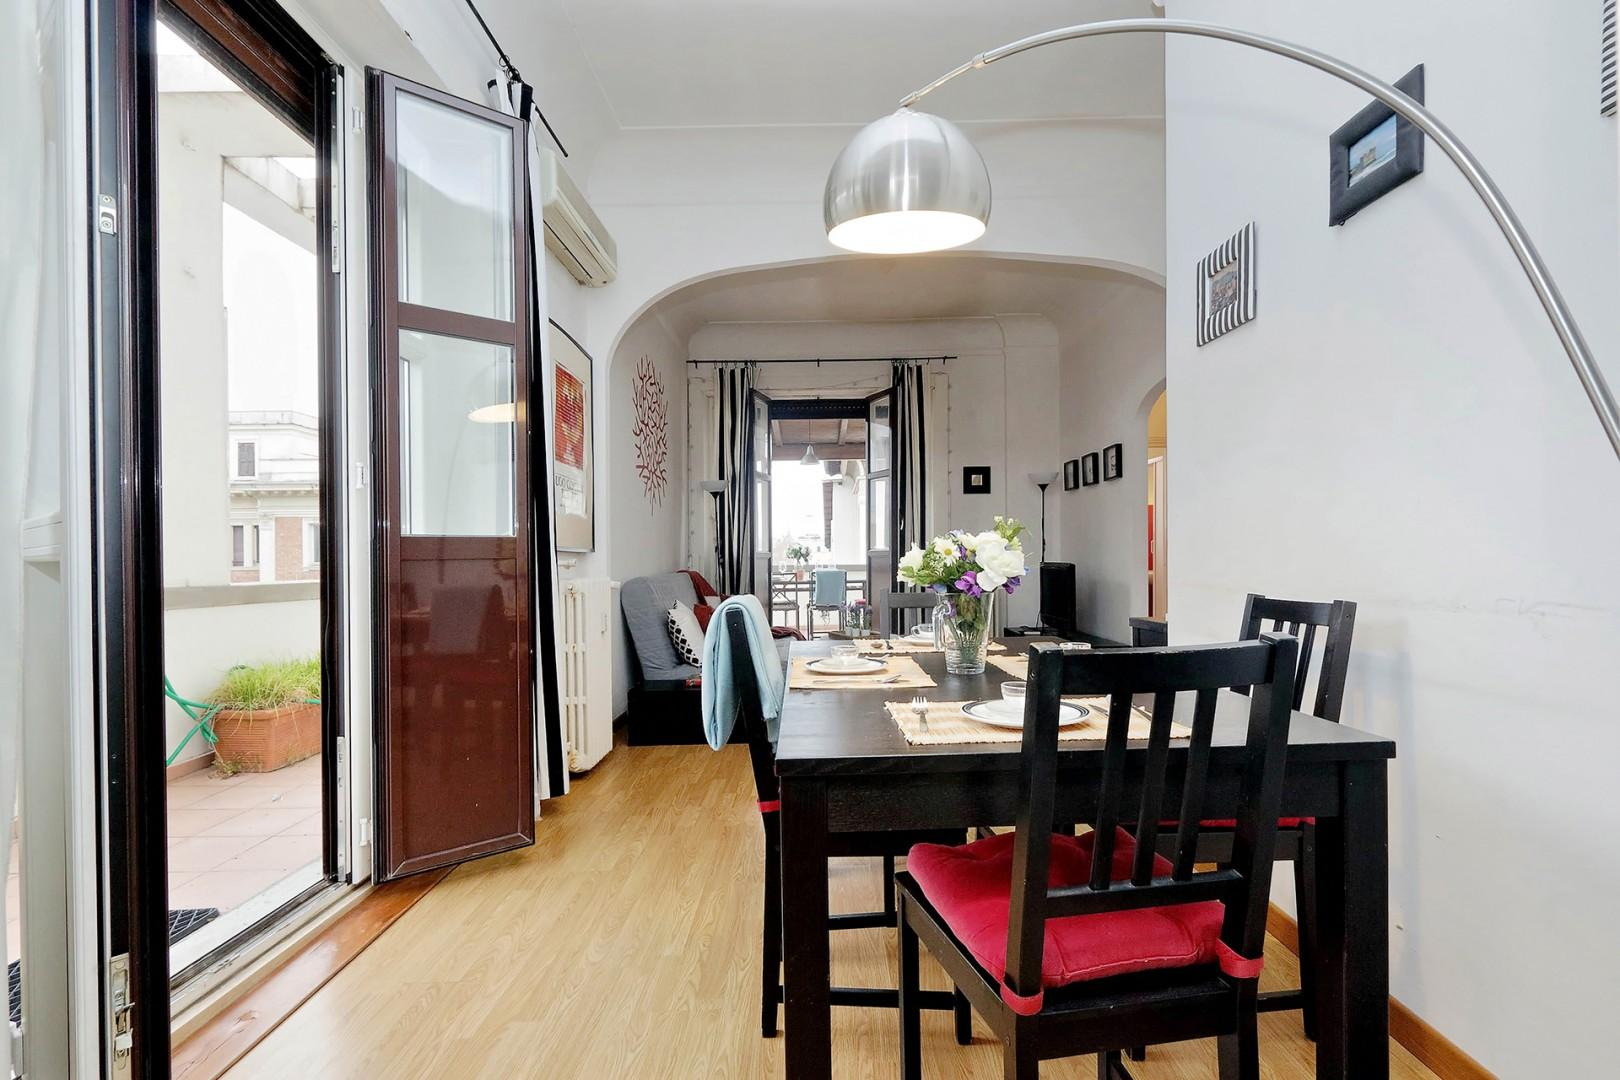 Dining area is illuminated by French doors to the terrace.